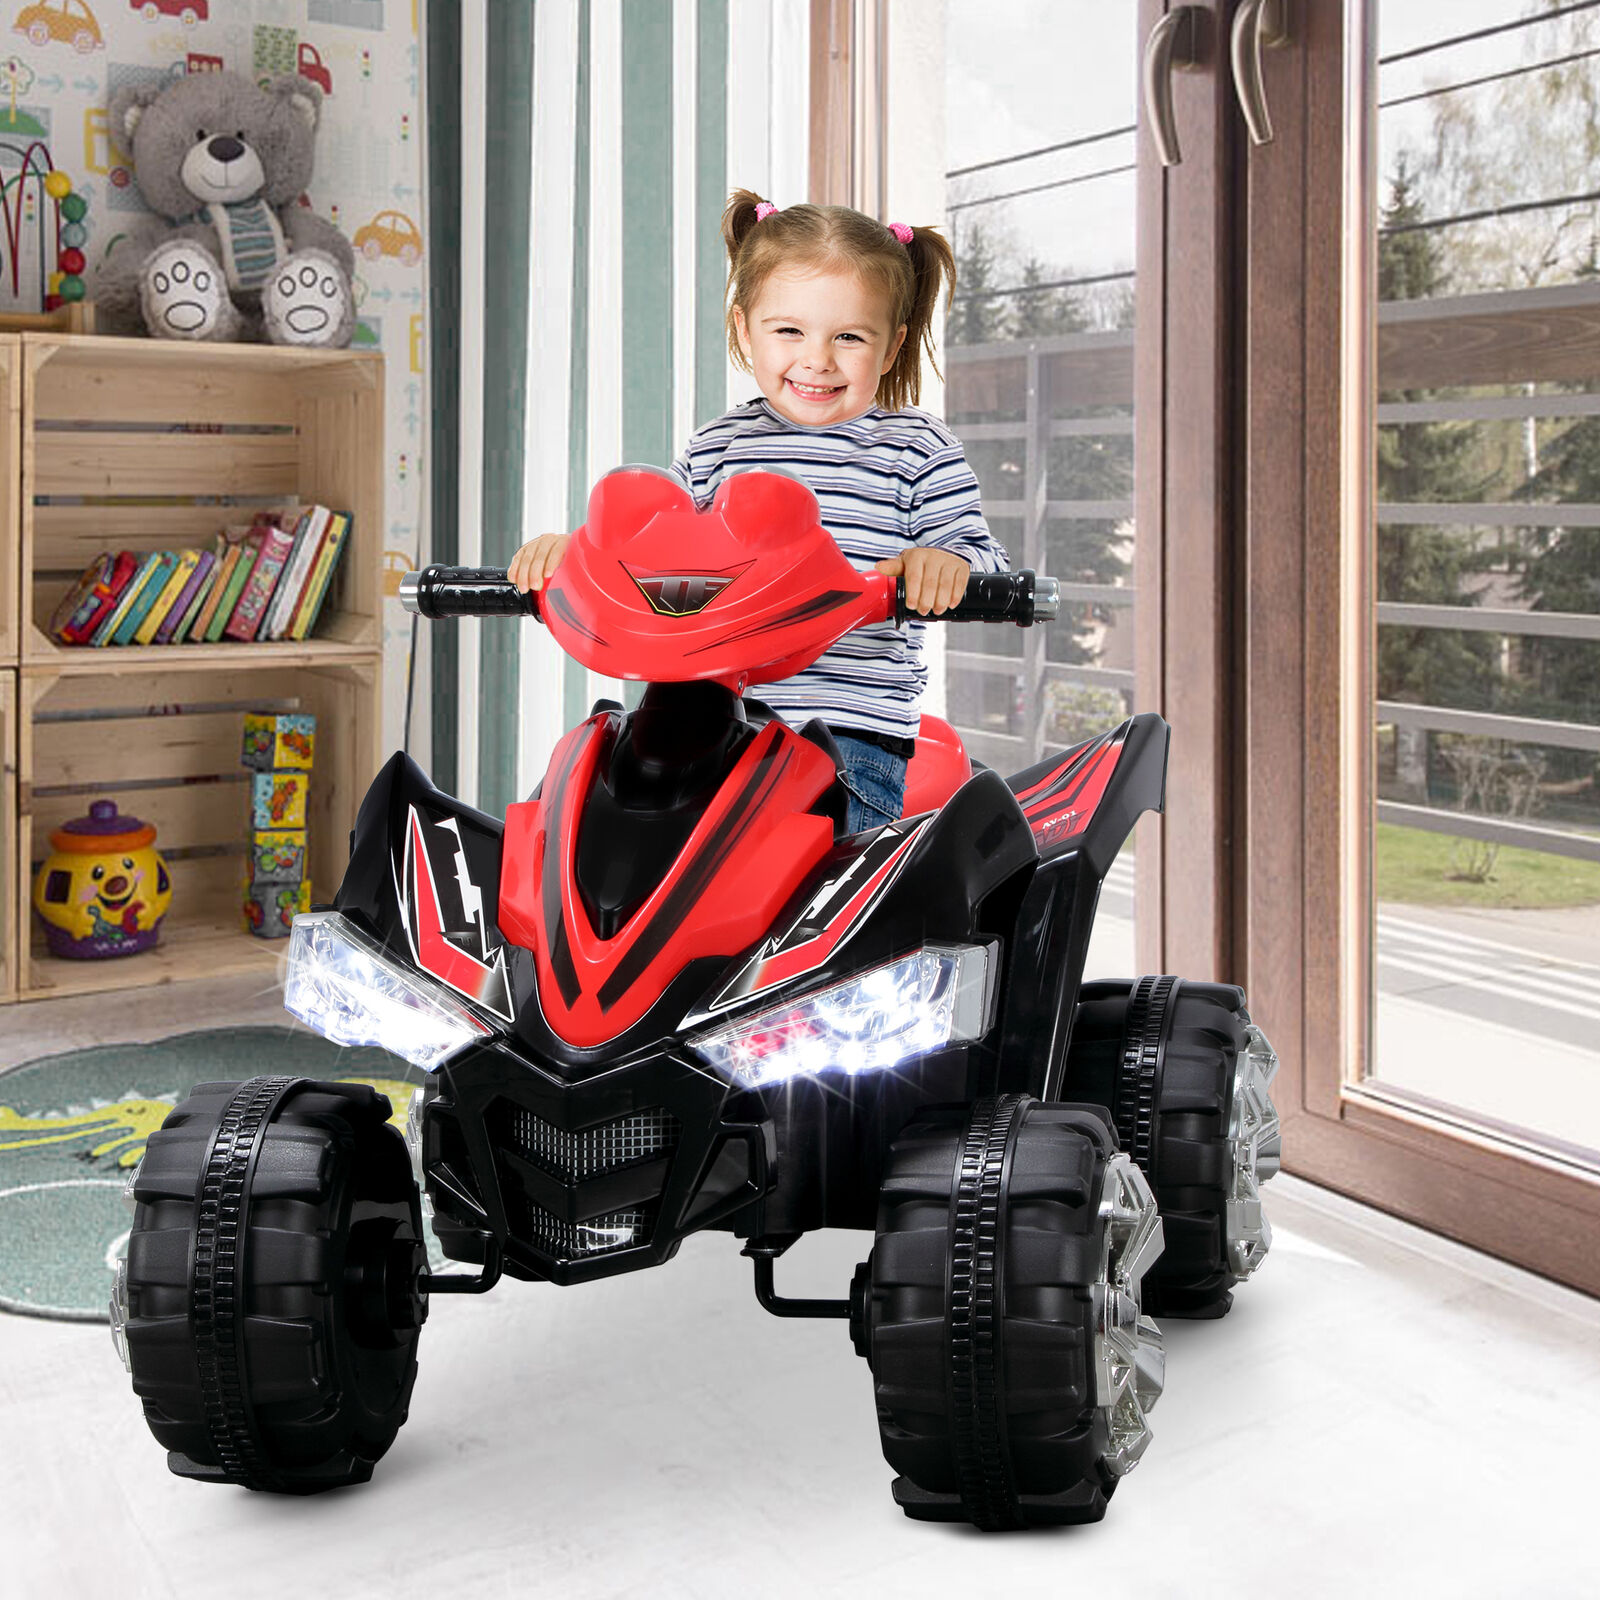 Kids ATV Quad 4 Wheeler Ride On with 12V Battery Power Electric LED Lights, Red